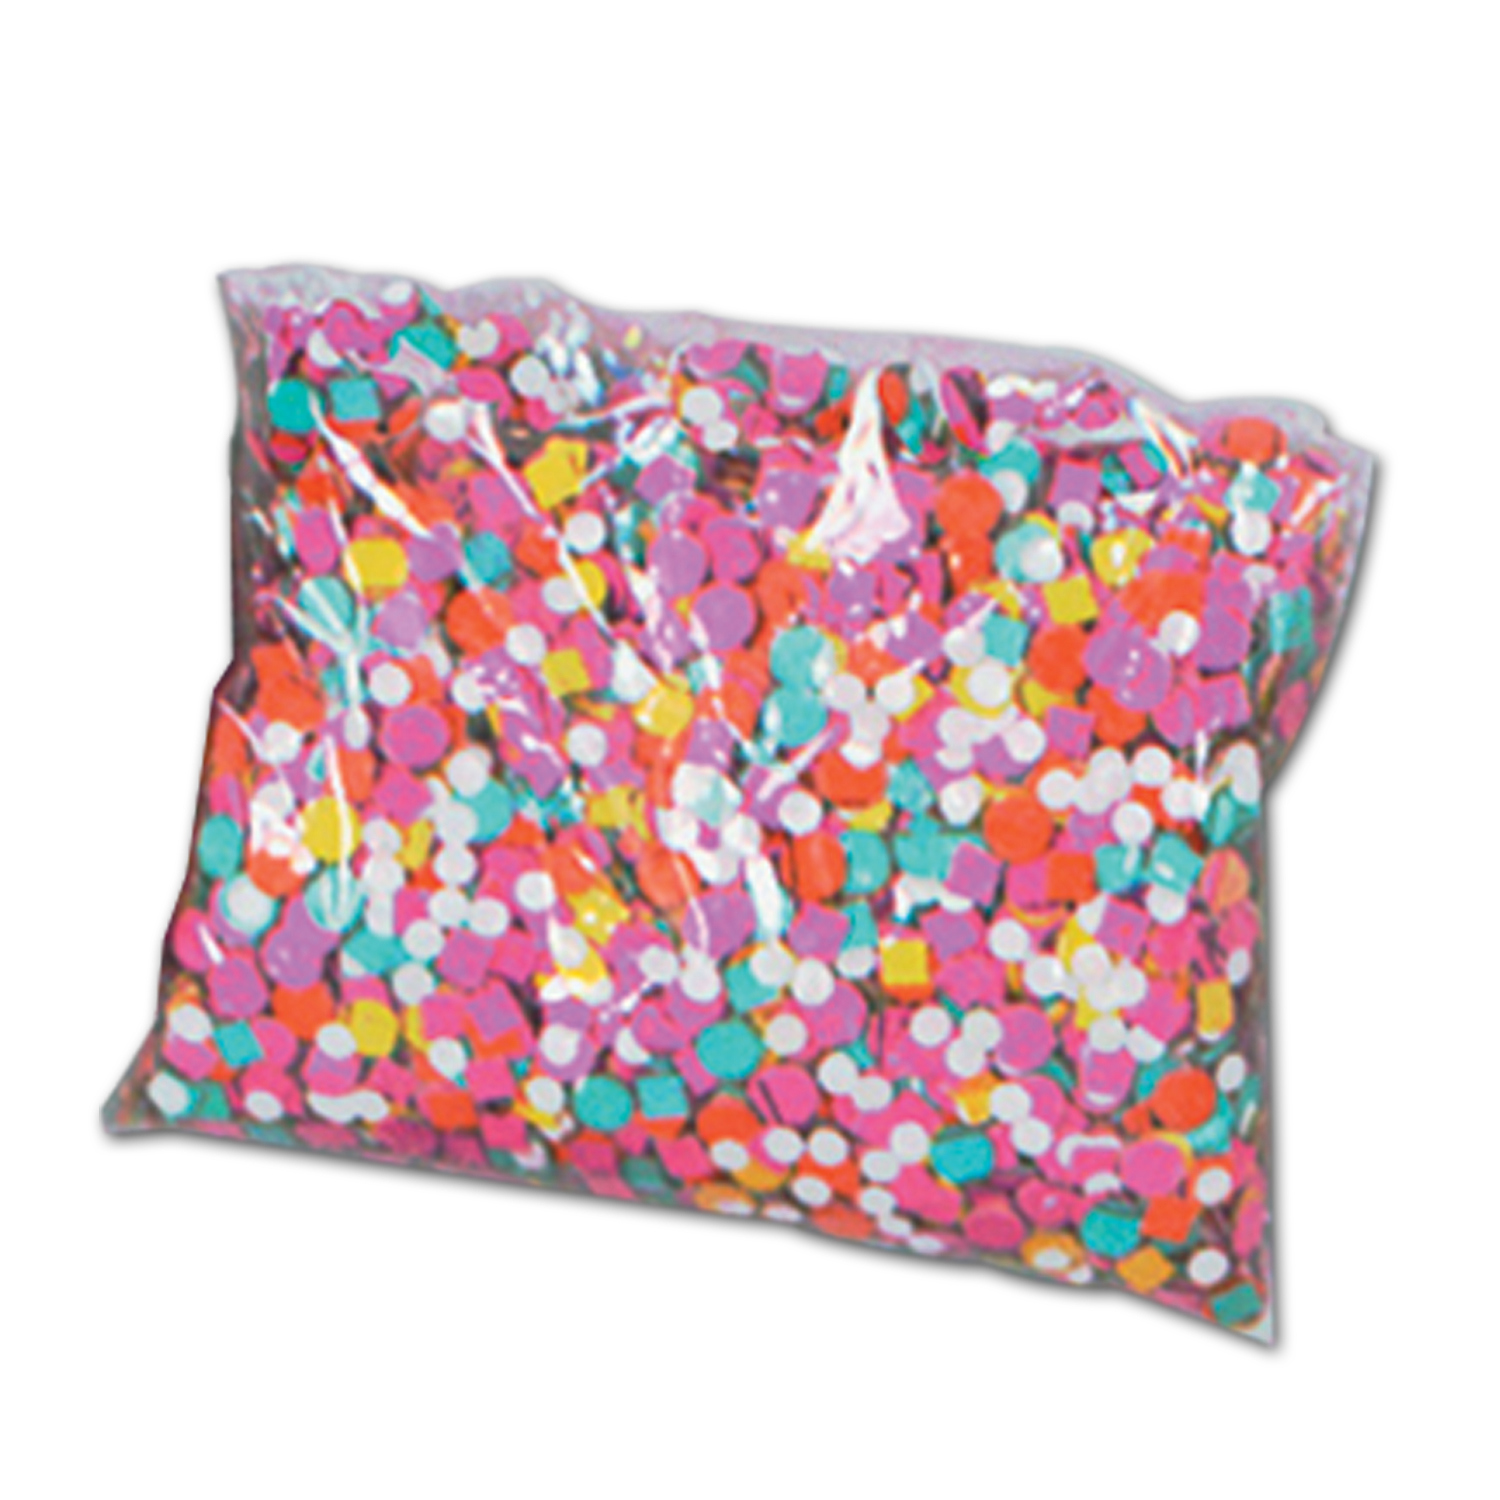 Bulk Confetti (45 lbs) confetti, assorted, colors, party, bulk, toss, table, decoration, New years, Float, concert